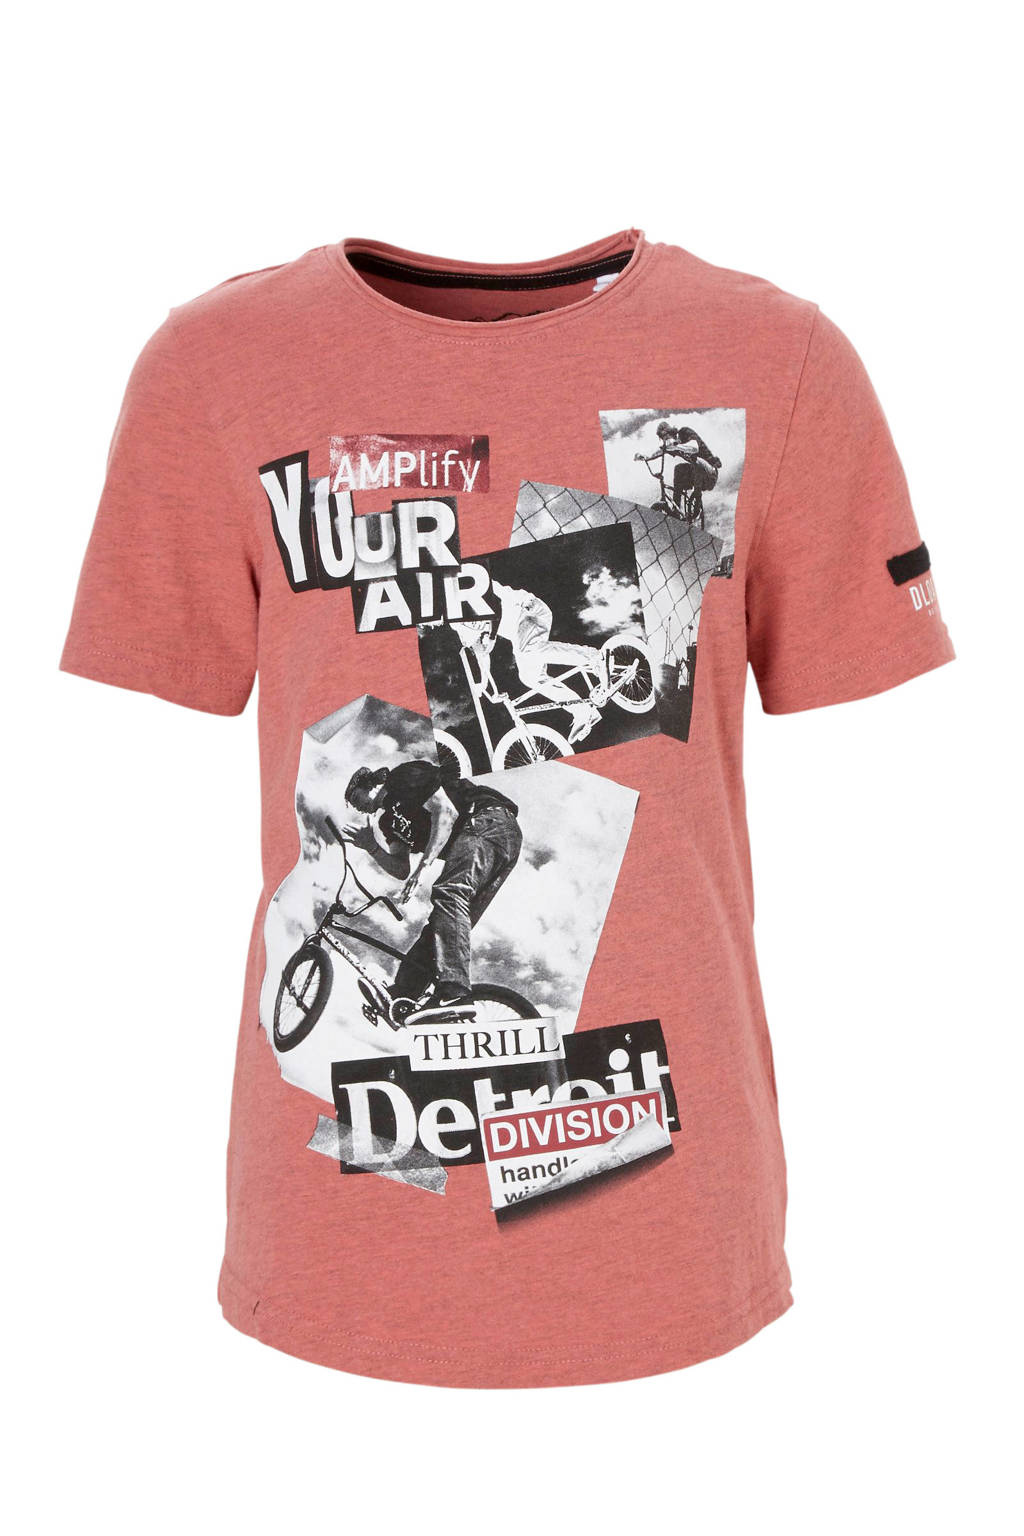 C&A Here & There T-shirt met printopdruk roze, Roodroze